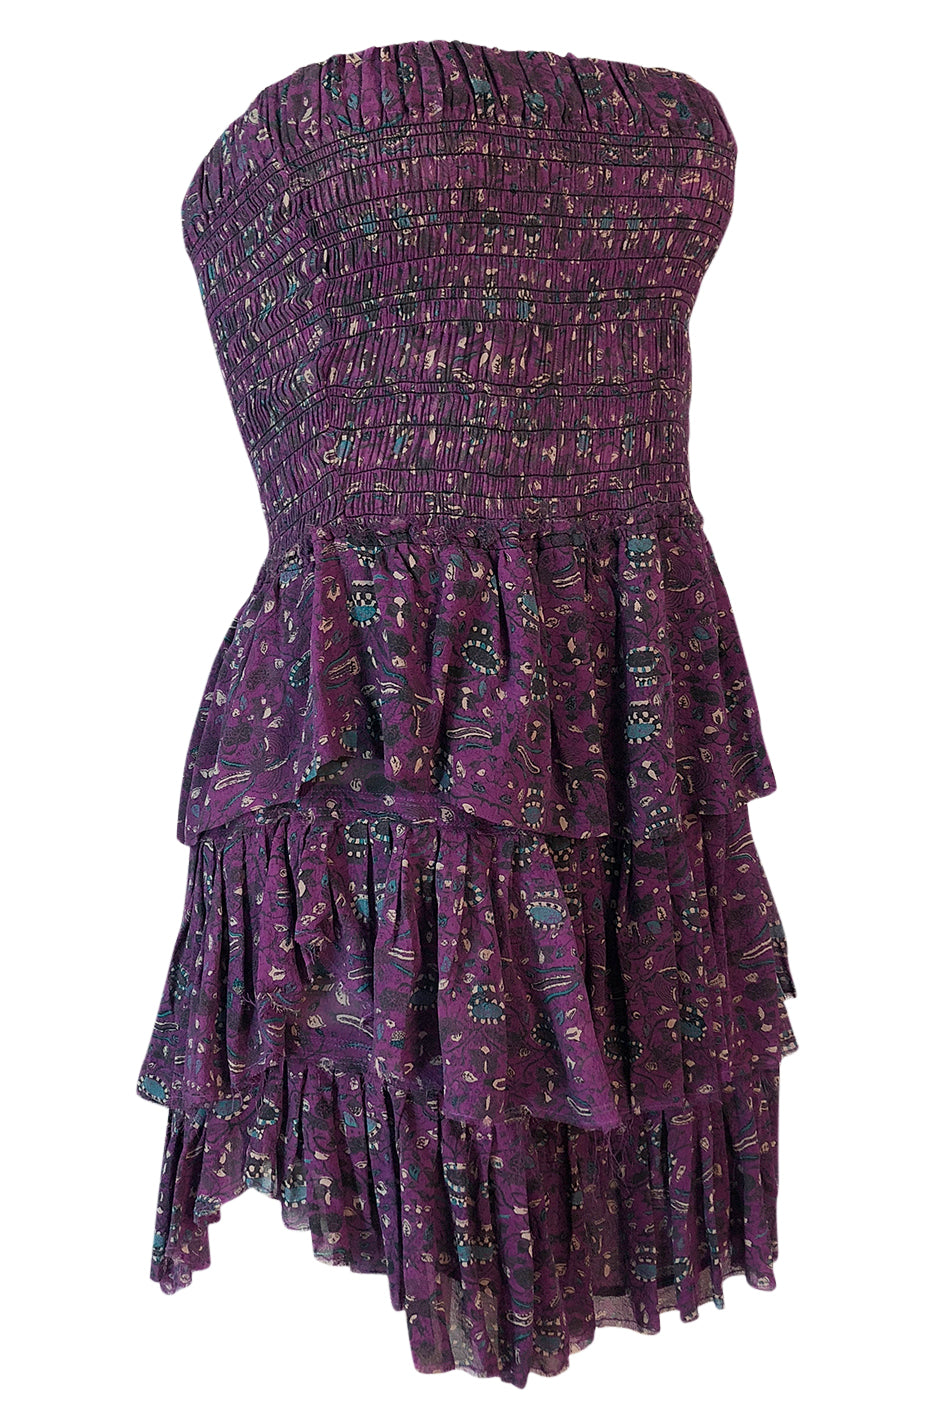 d195142fc21875 ... S S 2011 Isabel Marant Strapless Purple Print Runway Dress Look 3 ...